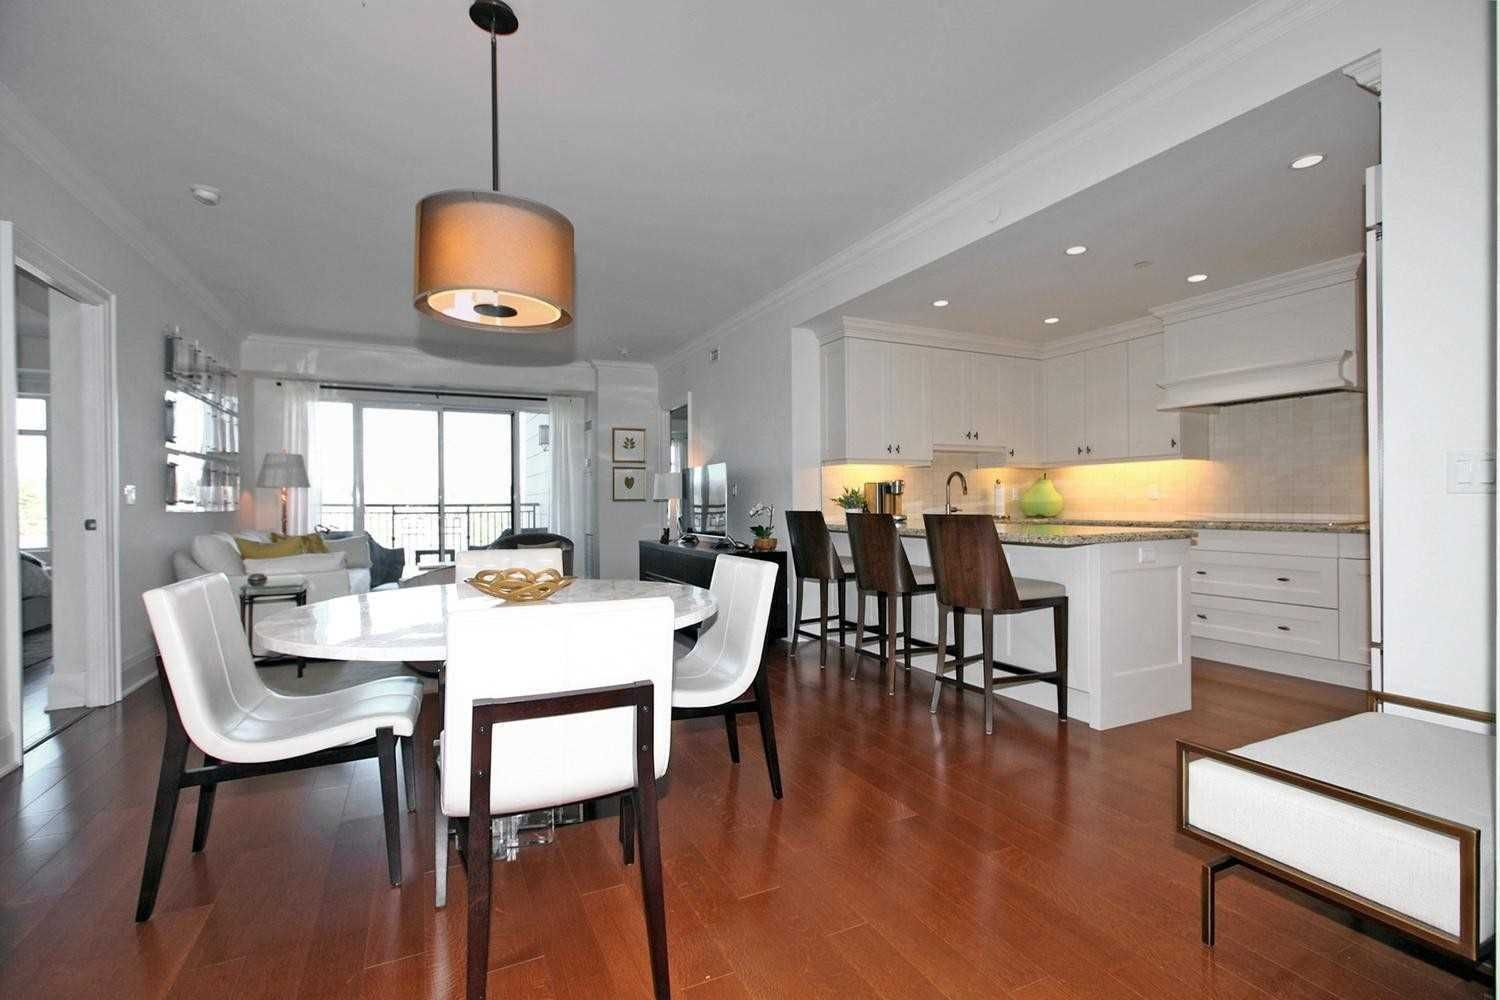 1888 Bayview Ave, unit 602 for rent in Toronto - image #2